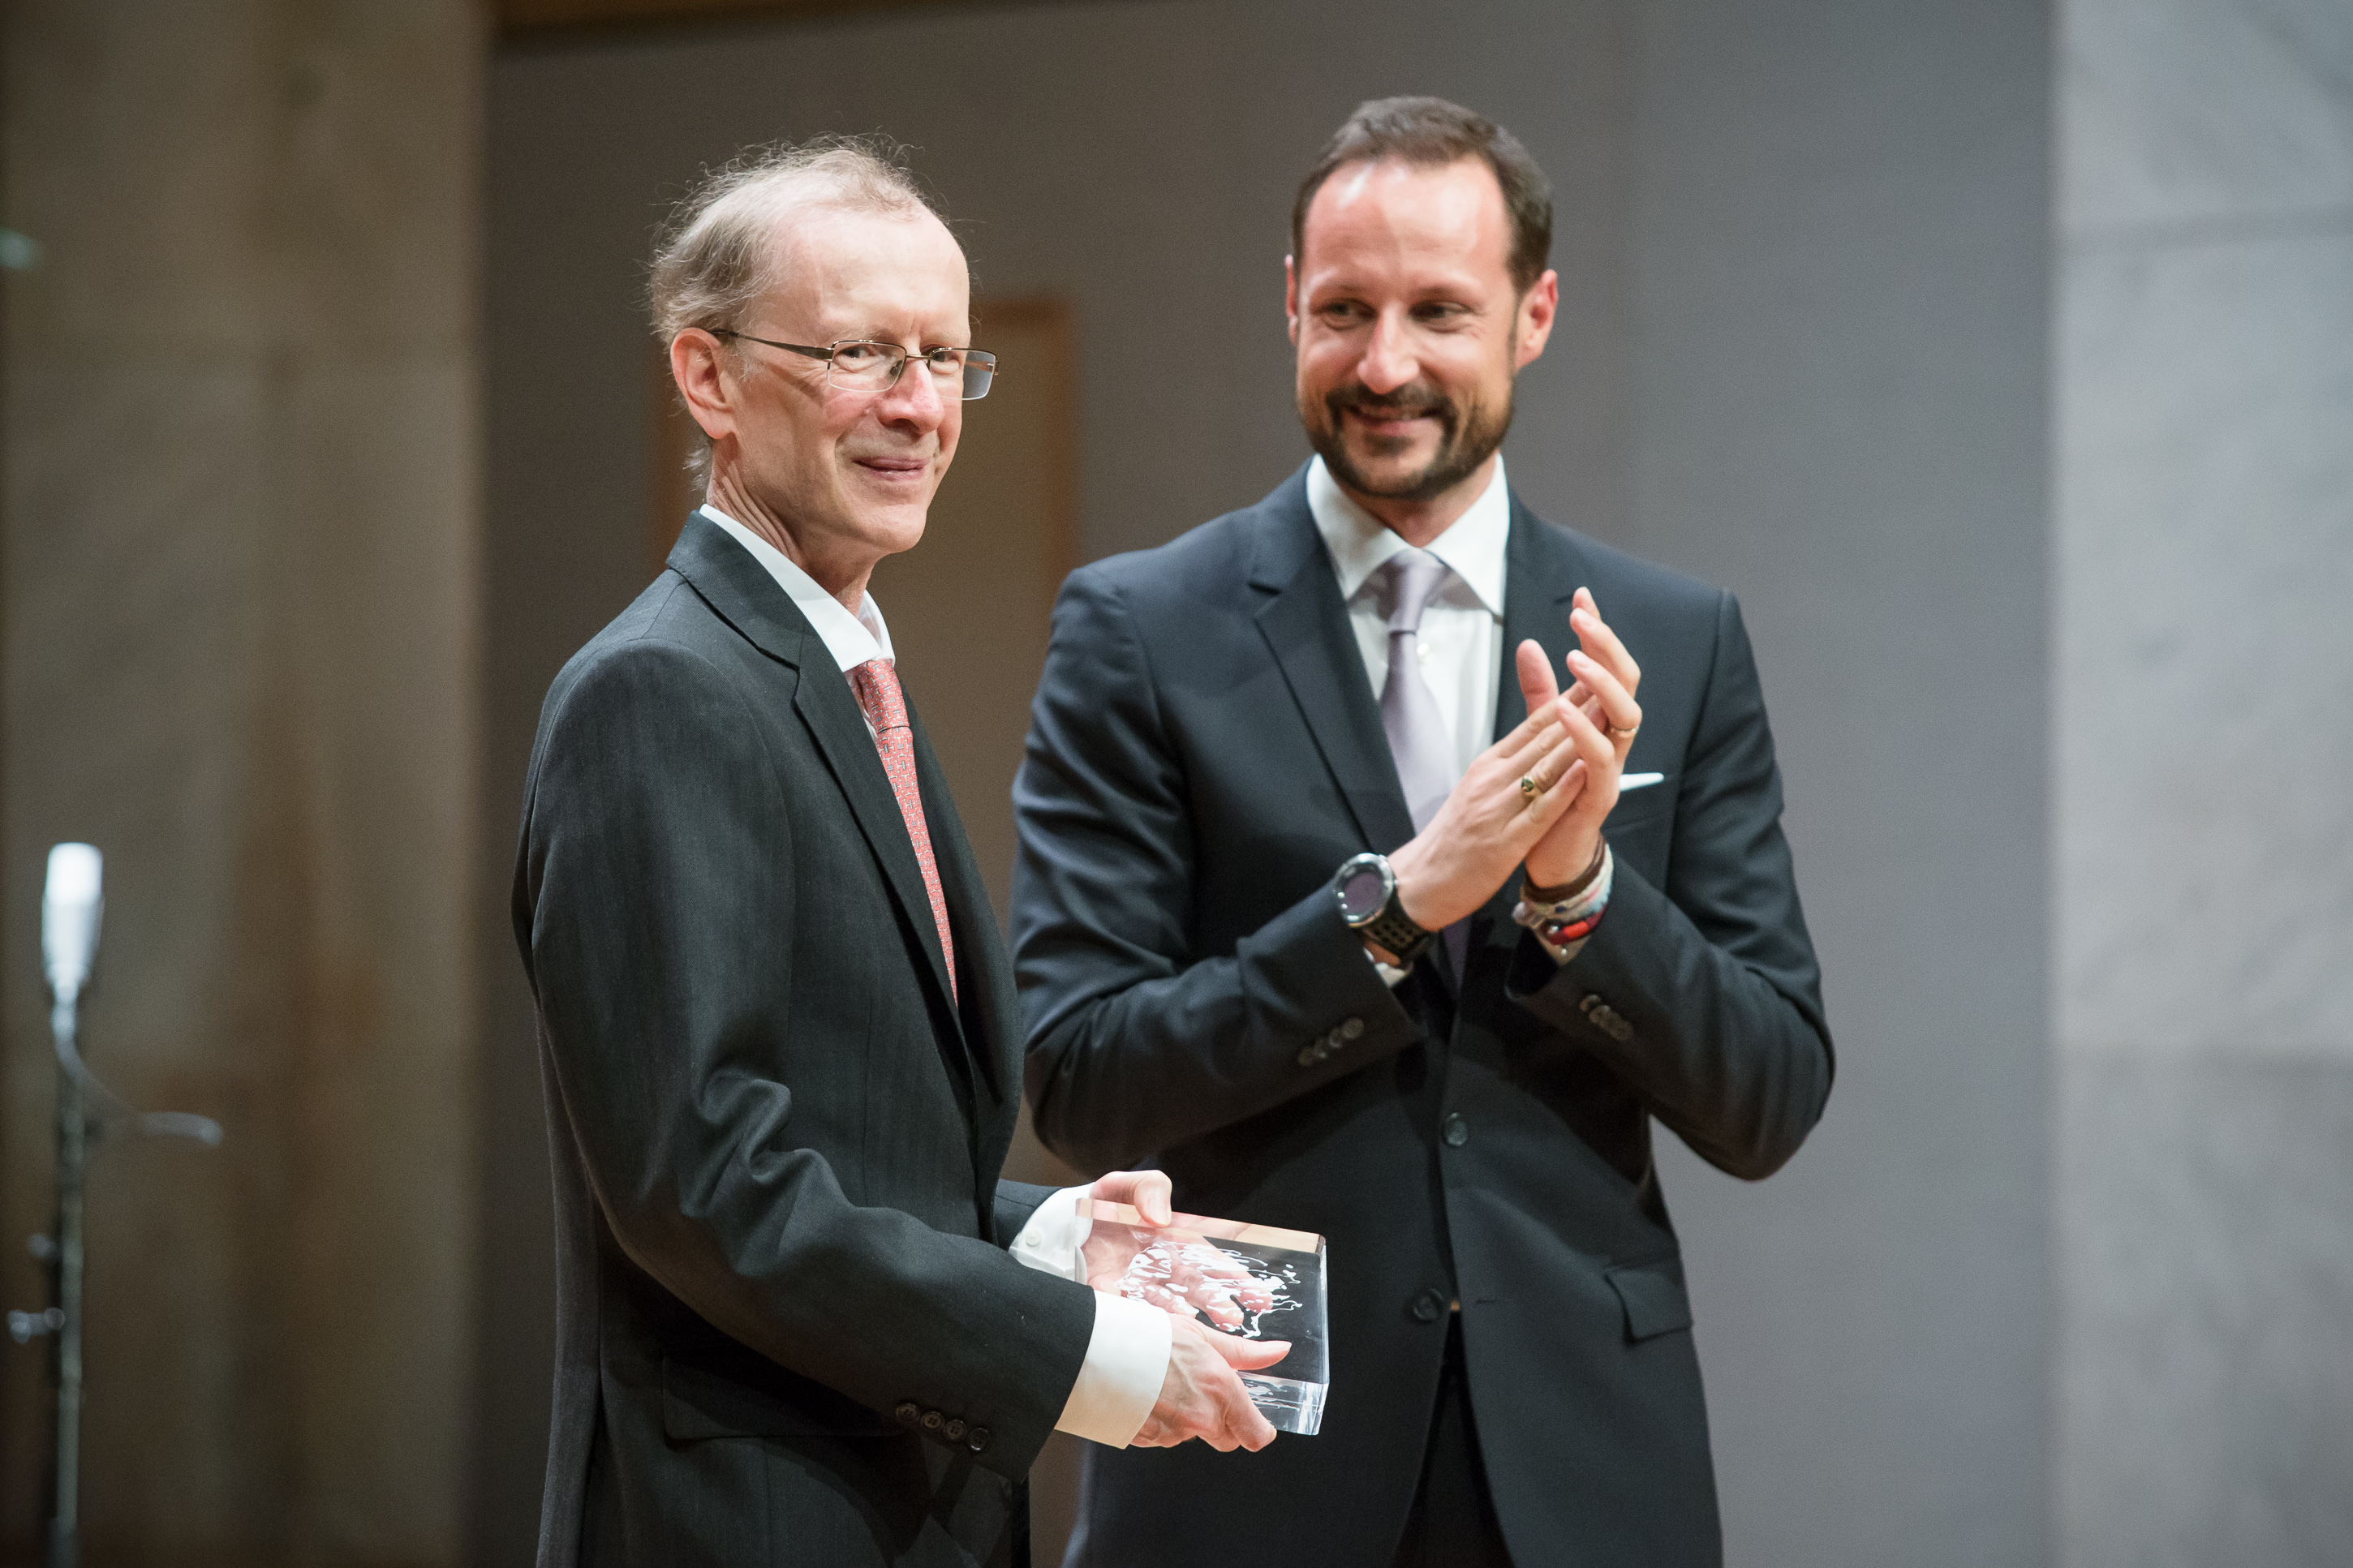 'A new era in number theory': Sir Andrew Wiles receives the Abel Prize for mathematics